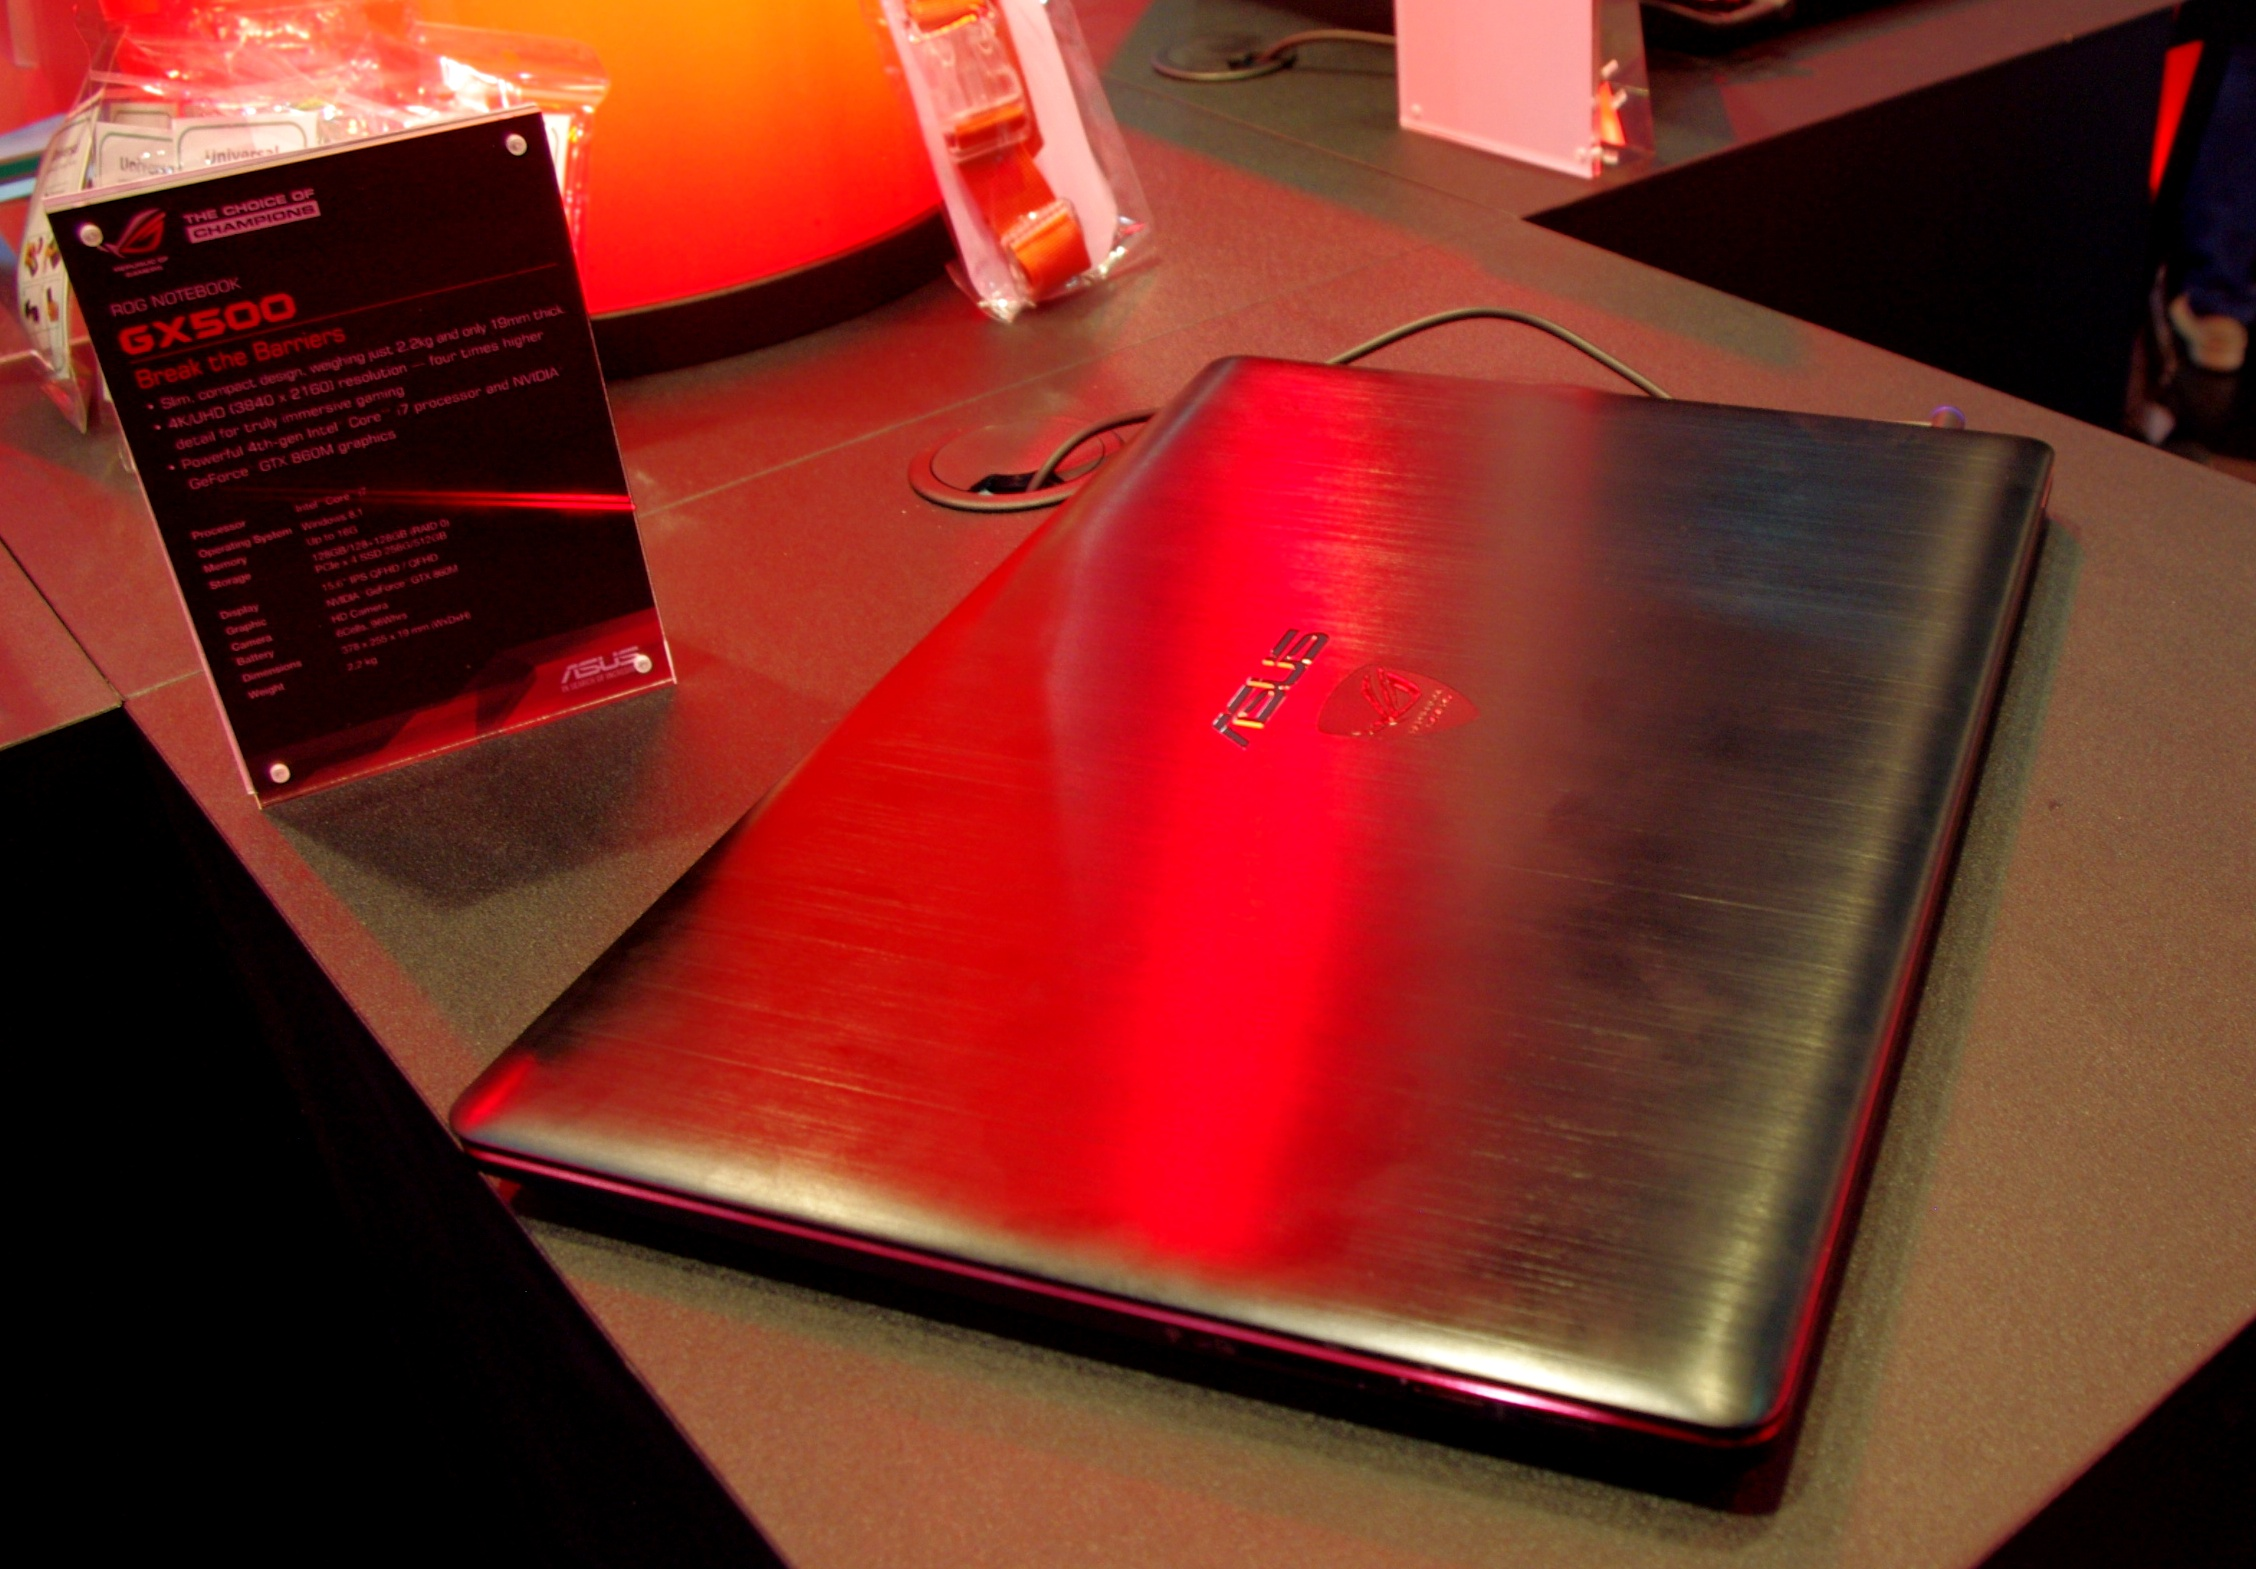 rog gx500 4k gaming laptop computex 2014 the asus booth. Black Bedroom Furniture Sets. Home Design Ideas